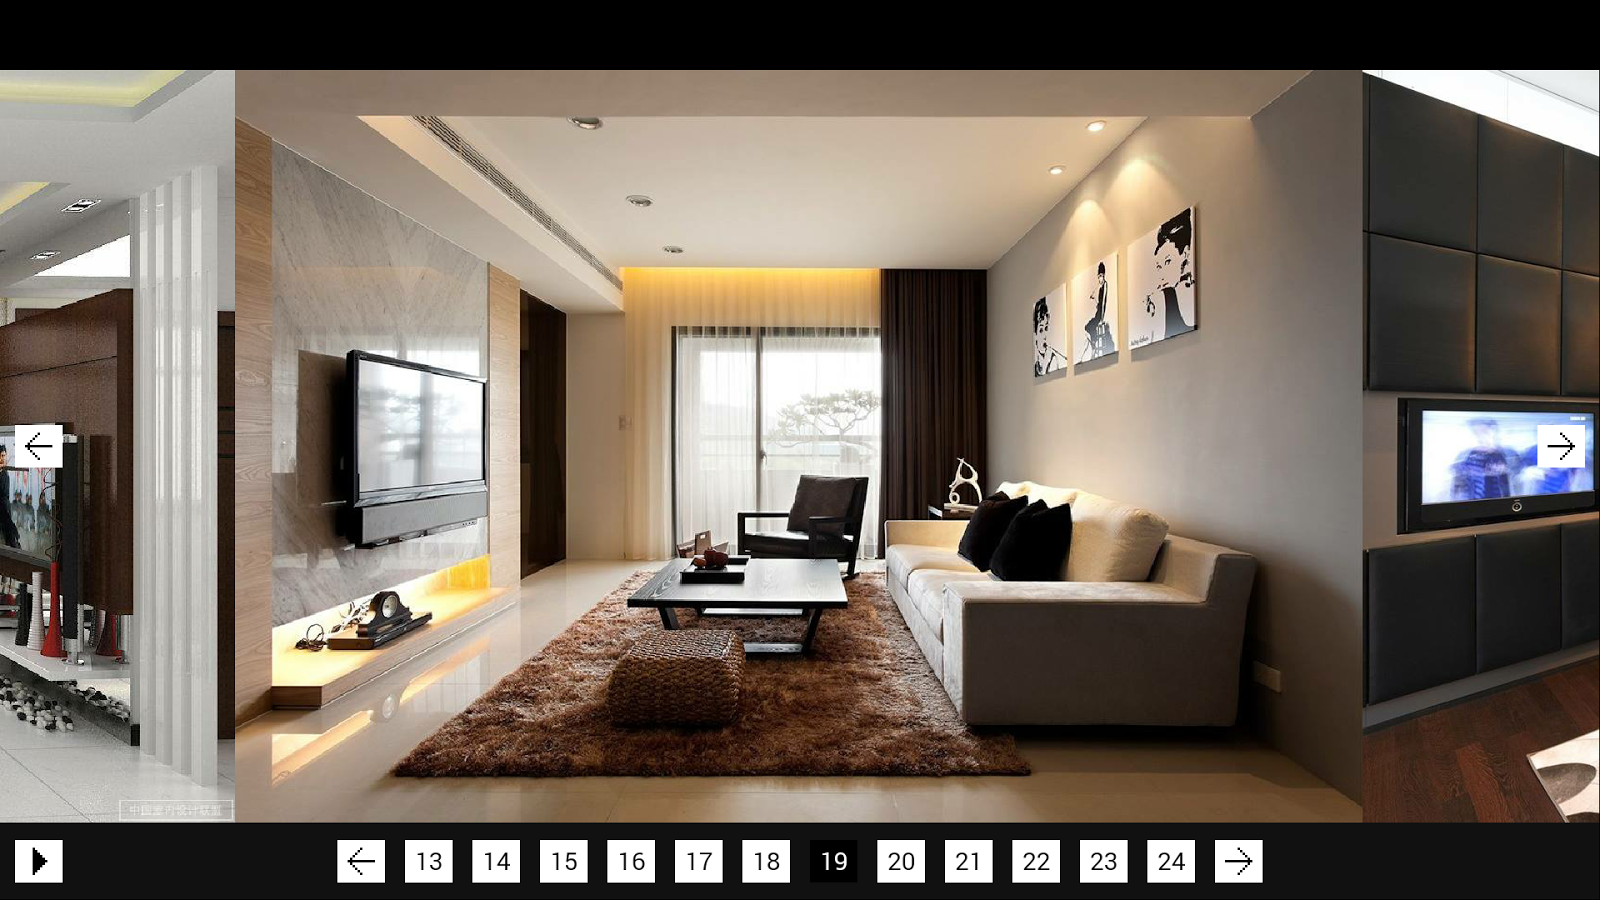 Home Interior Design 1.2 APK Download - Android Lifestyle Apps